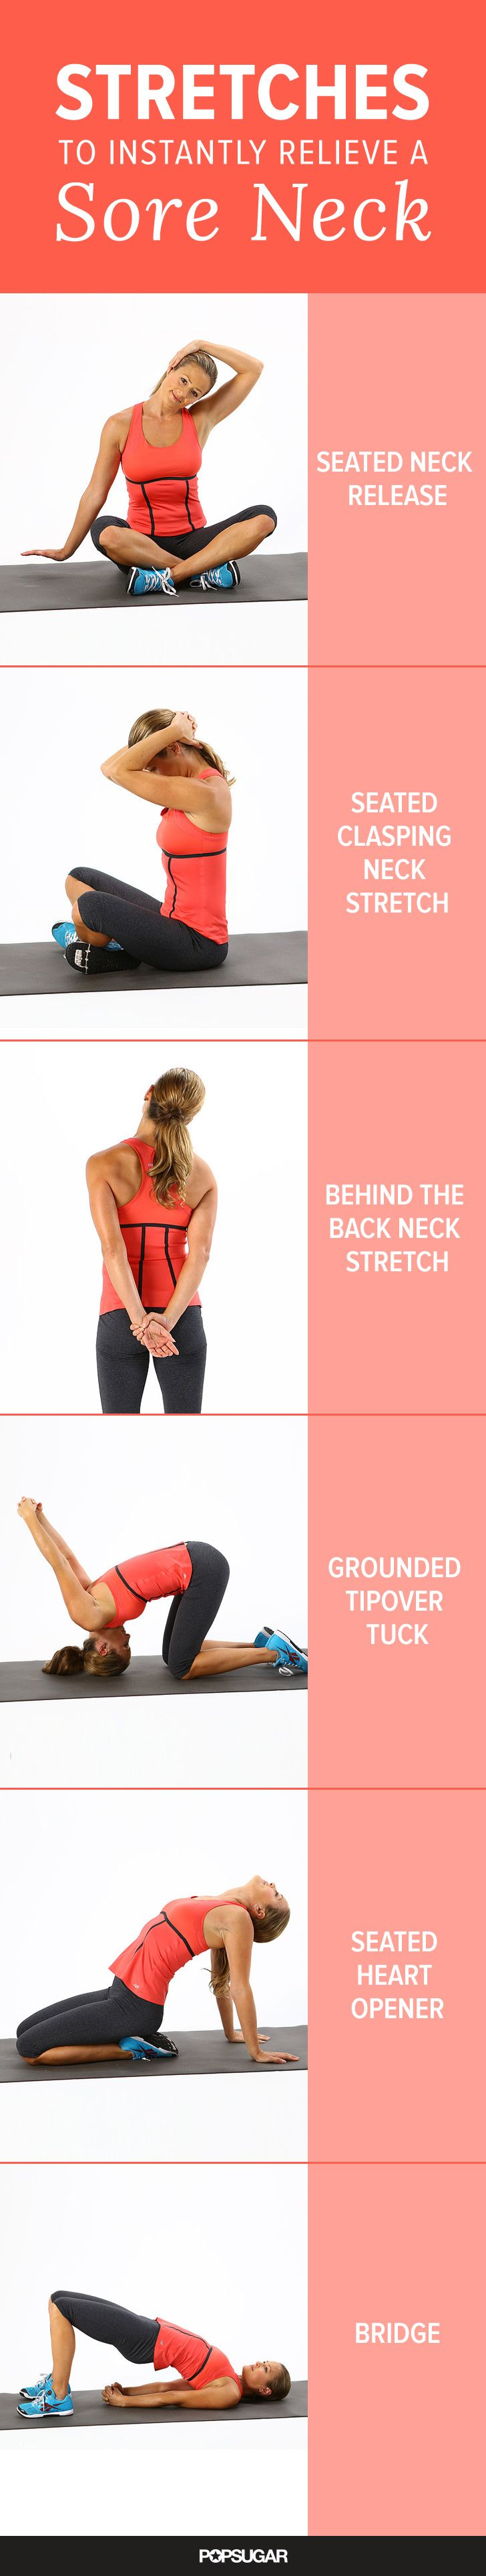 Whether you woke up with a sore neck or you have one from sitting in front of a computer all day, these stretches can offer the relief you need.